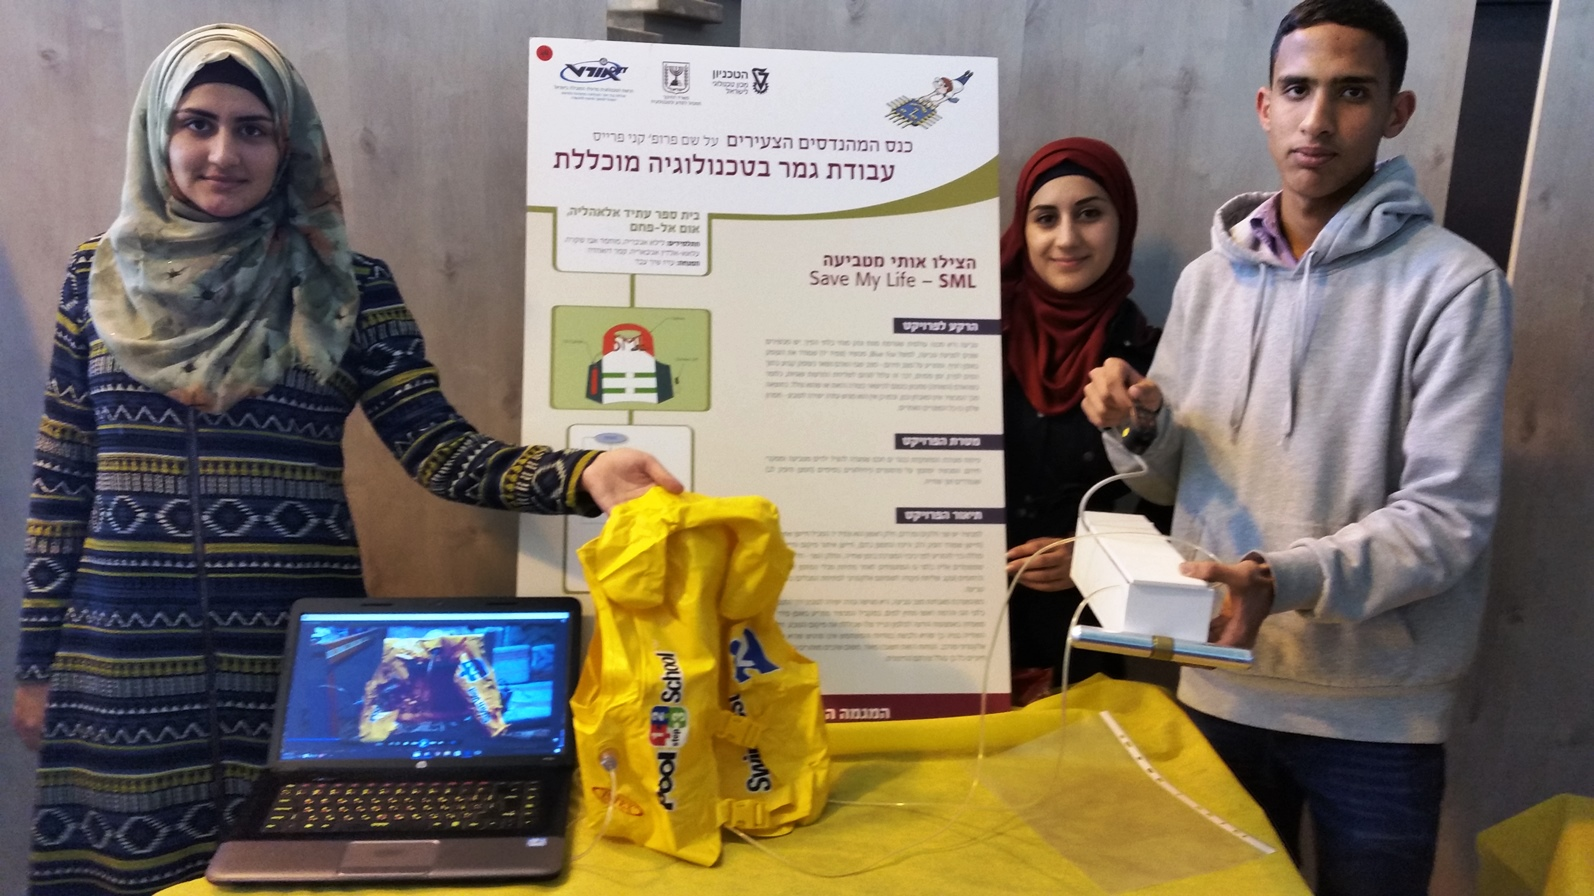 Jewish, Muslim, Druze, Bedouin and Christian Israelis all presented their projects together. Photo courtesy of Sci-Tech Schools Network